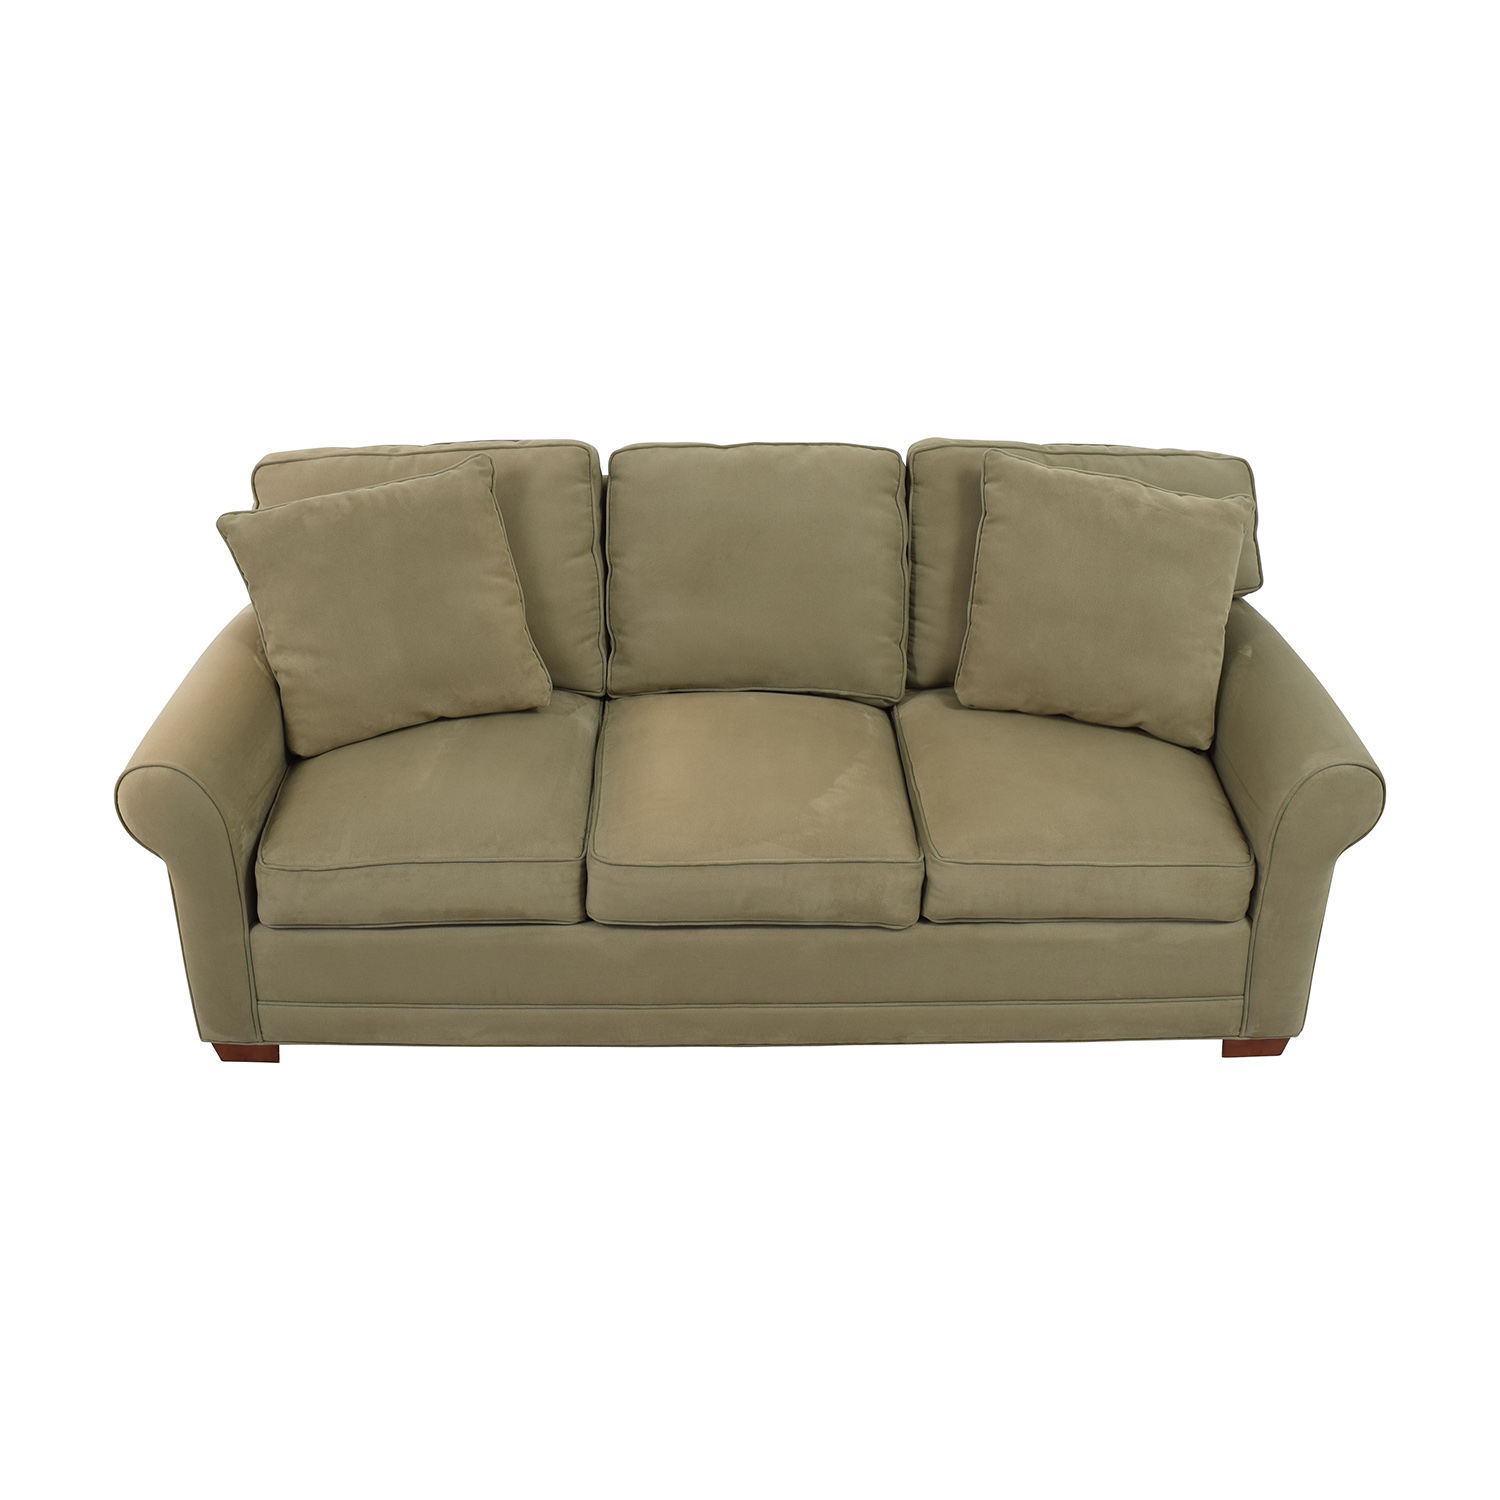 Raymour & Flanigan Raymour & Flanigan Beige Three-Cushion Couch dimensions